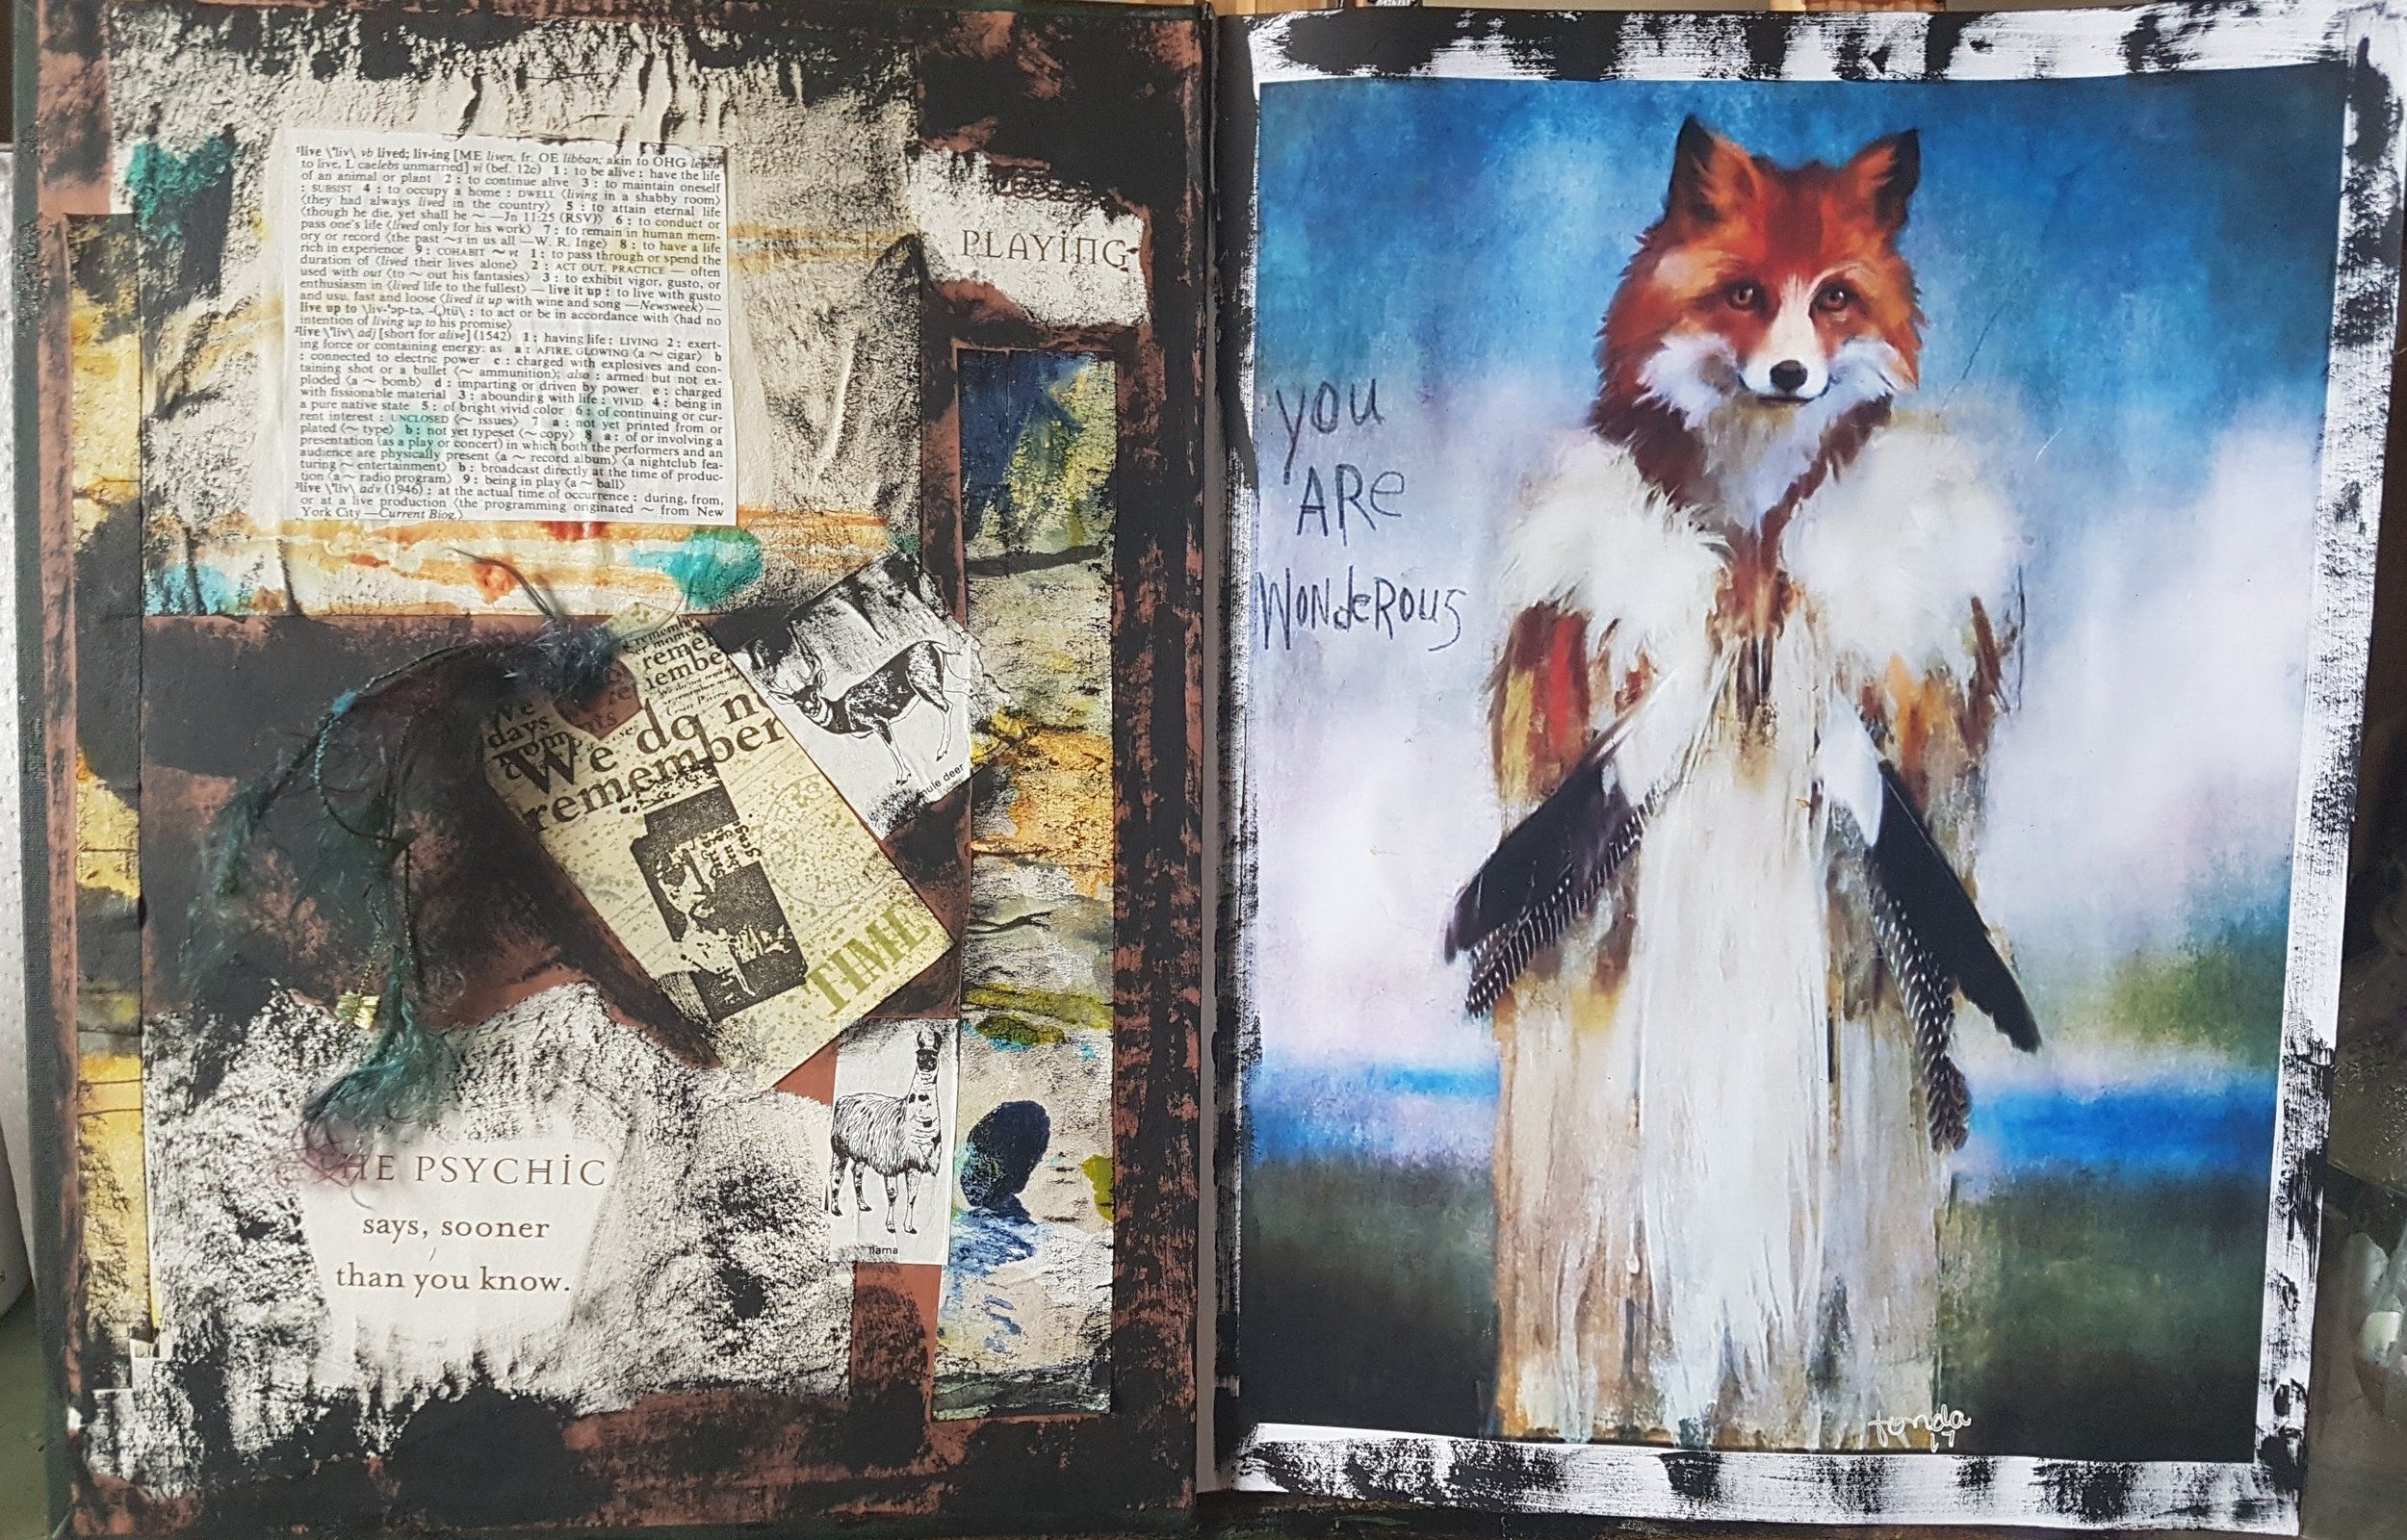 lynn wilson - Journal Inside Front Cover with Fondas You Are Wondrous piece and left side with mementos from Fonda .jpg